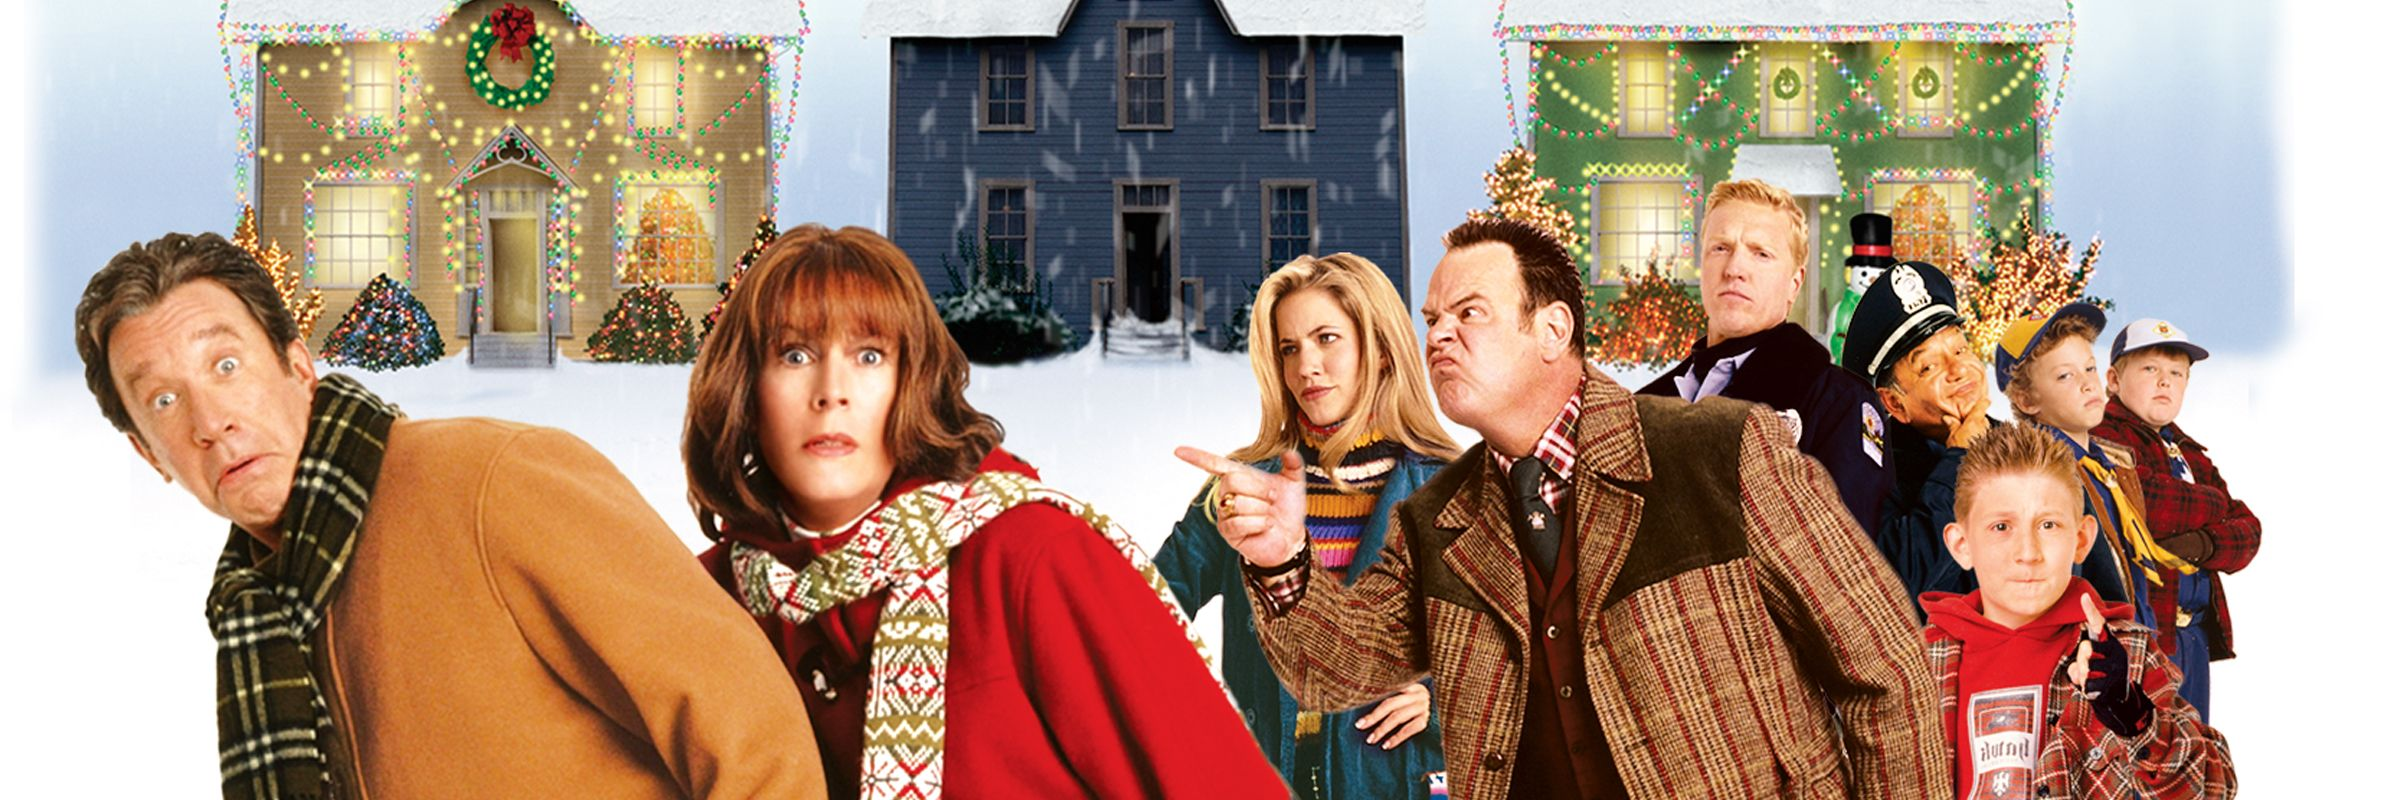 Christmas With The Kranks House.Christmas With The Kranks Full Movie Movies Anywhere